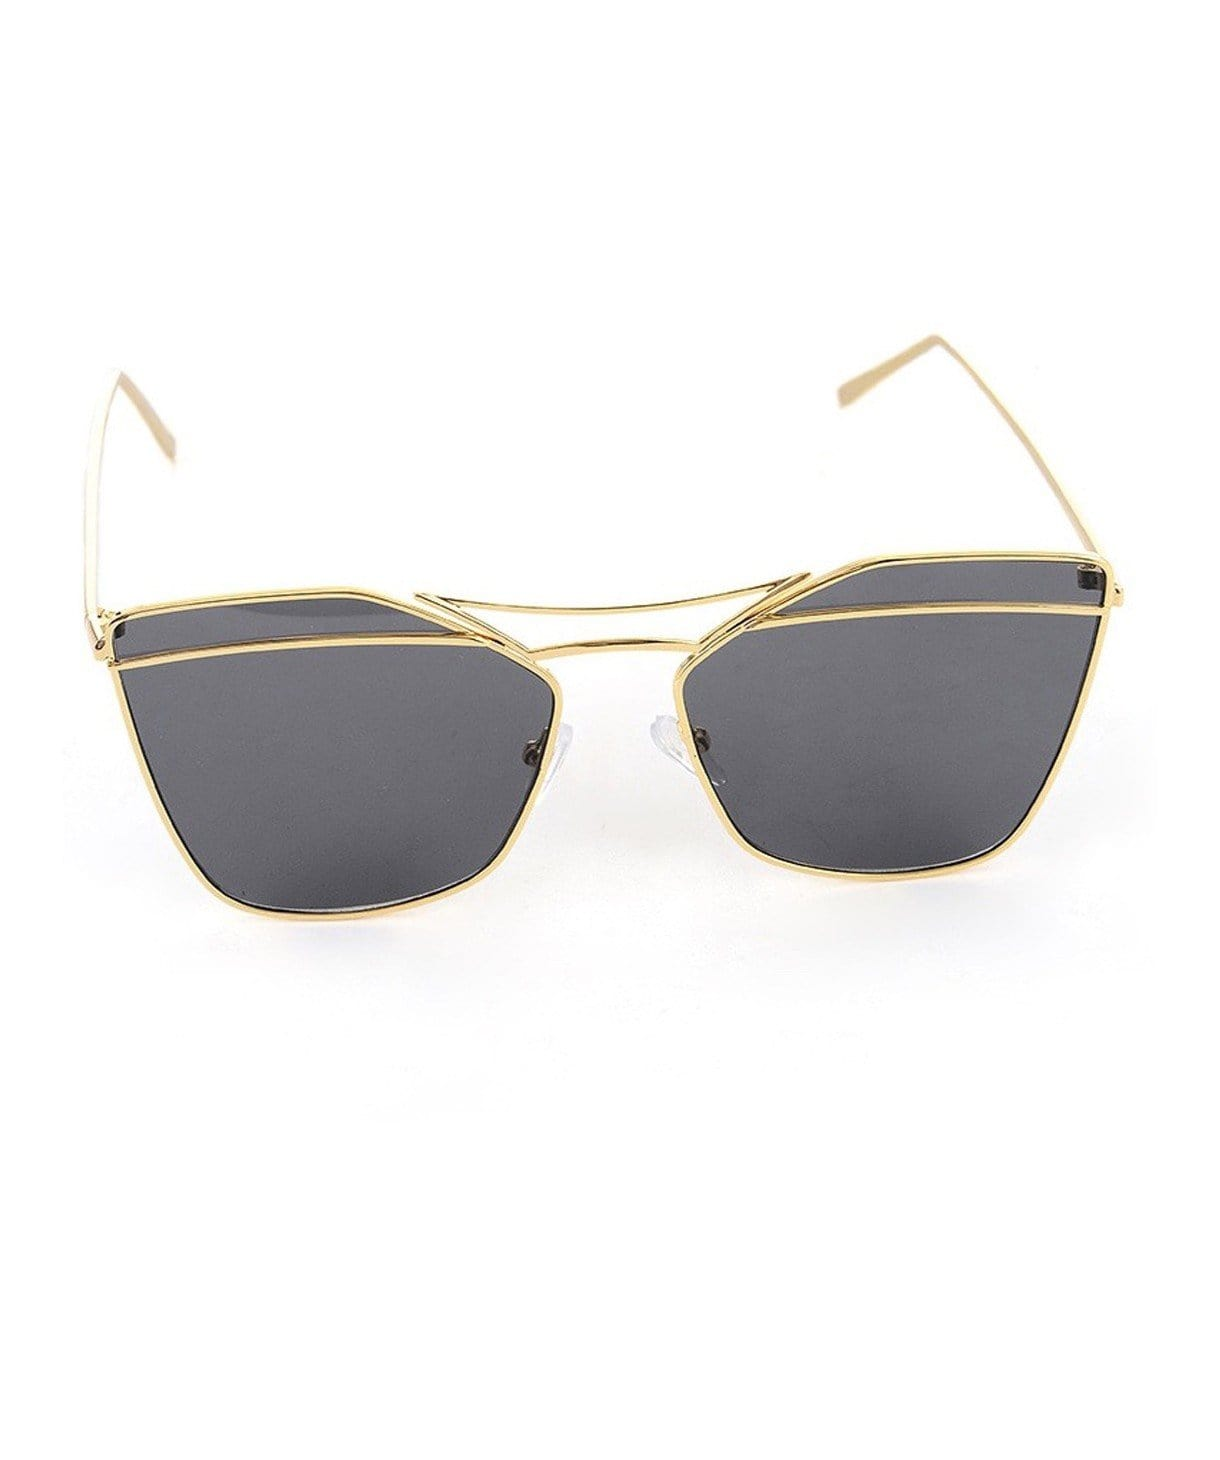 Chic Bridge Sunglasses - Uptownie